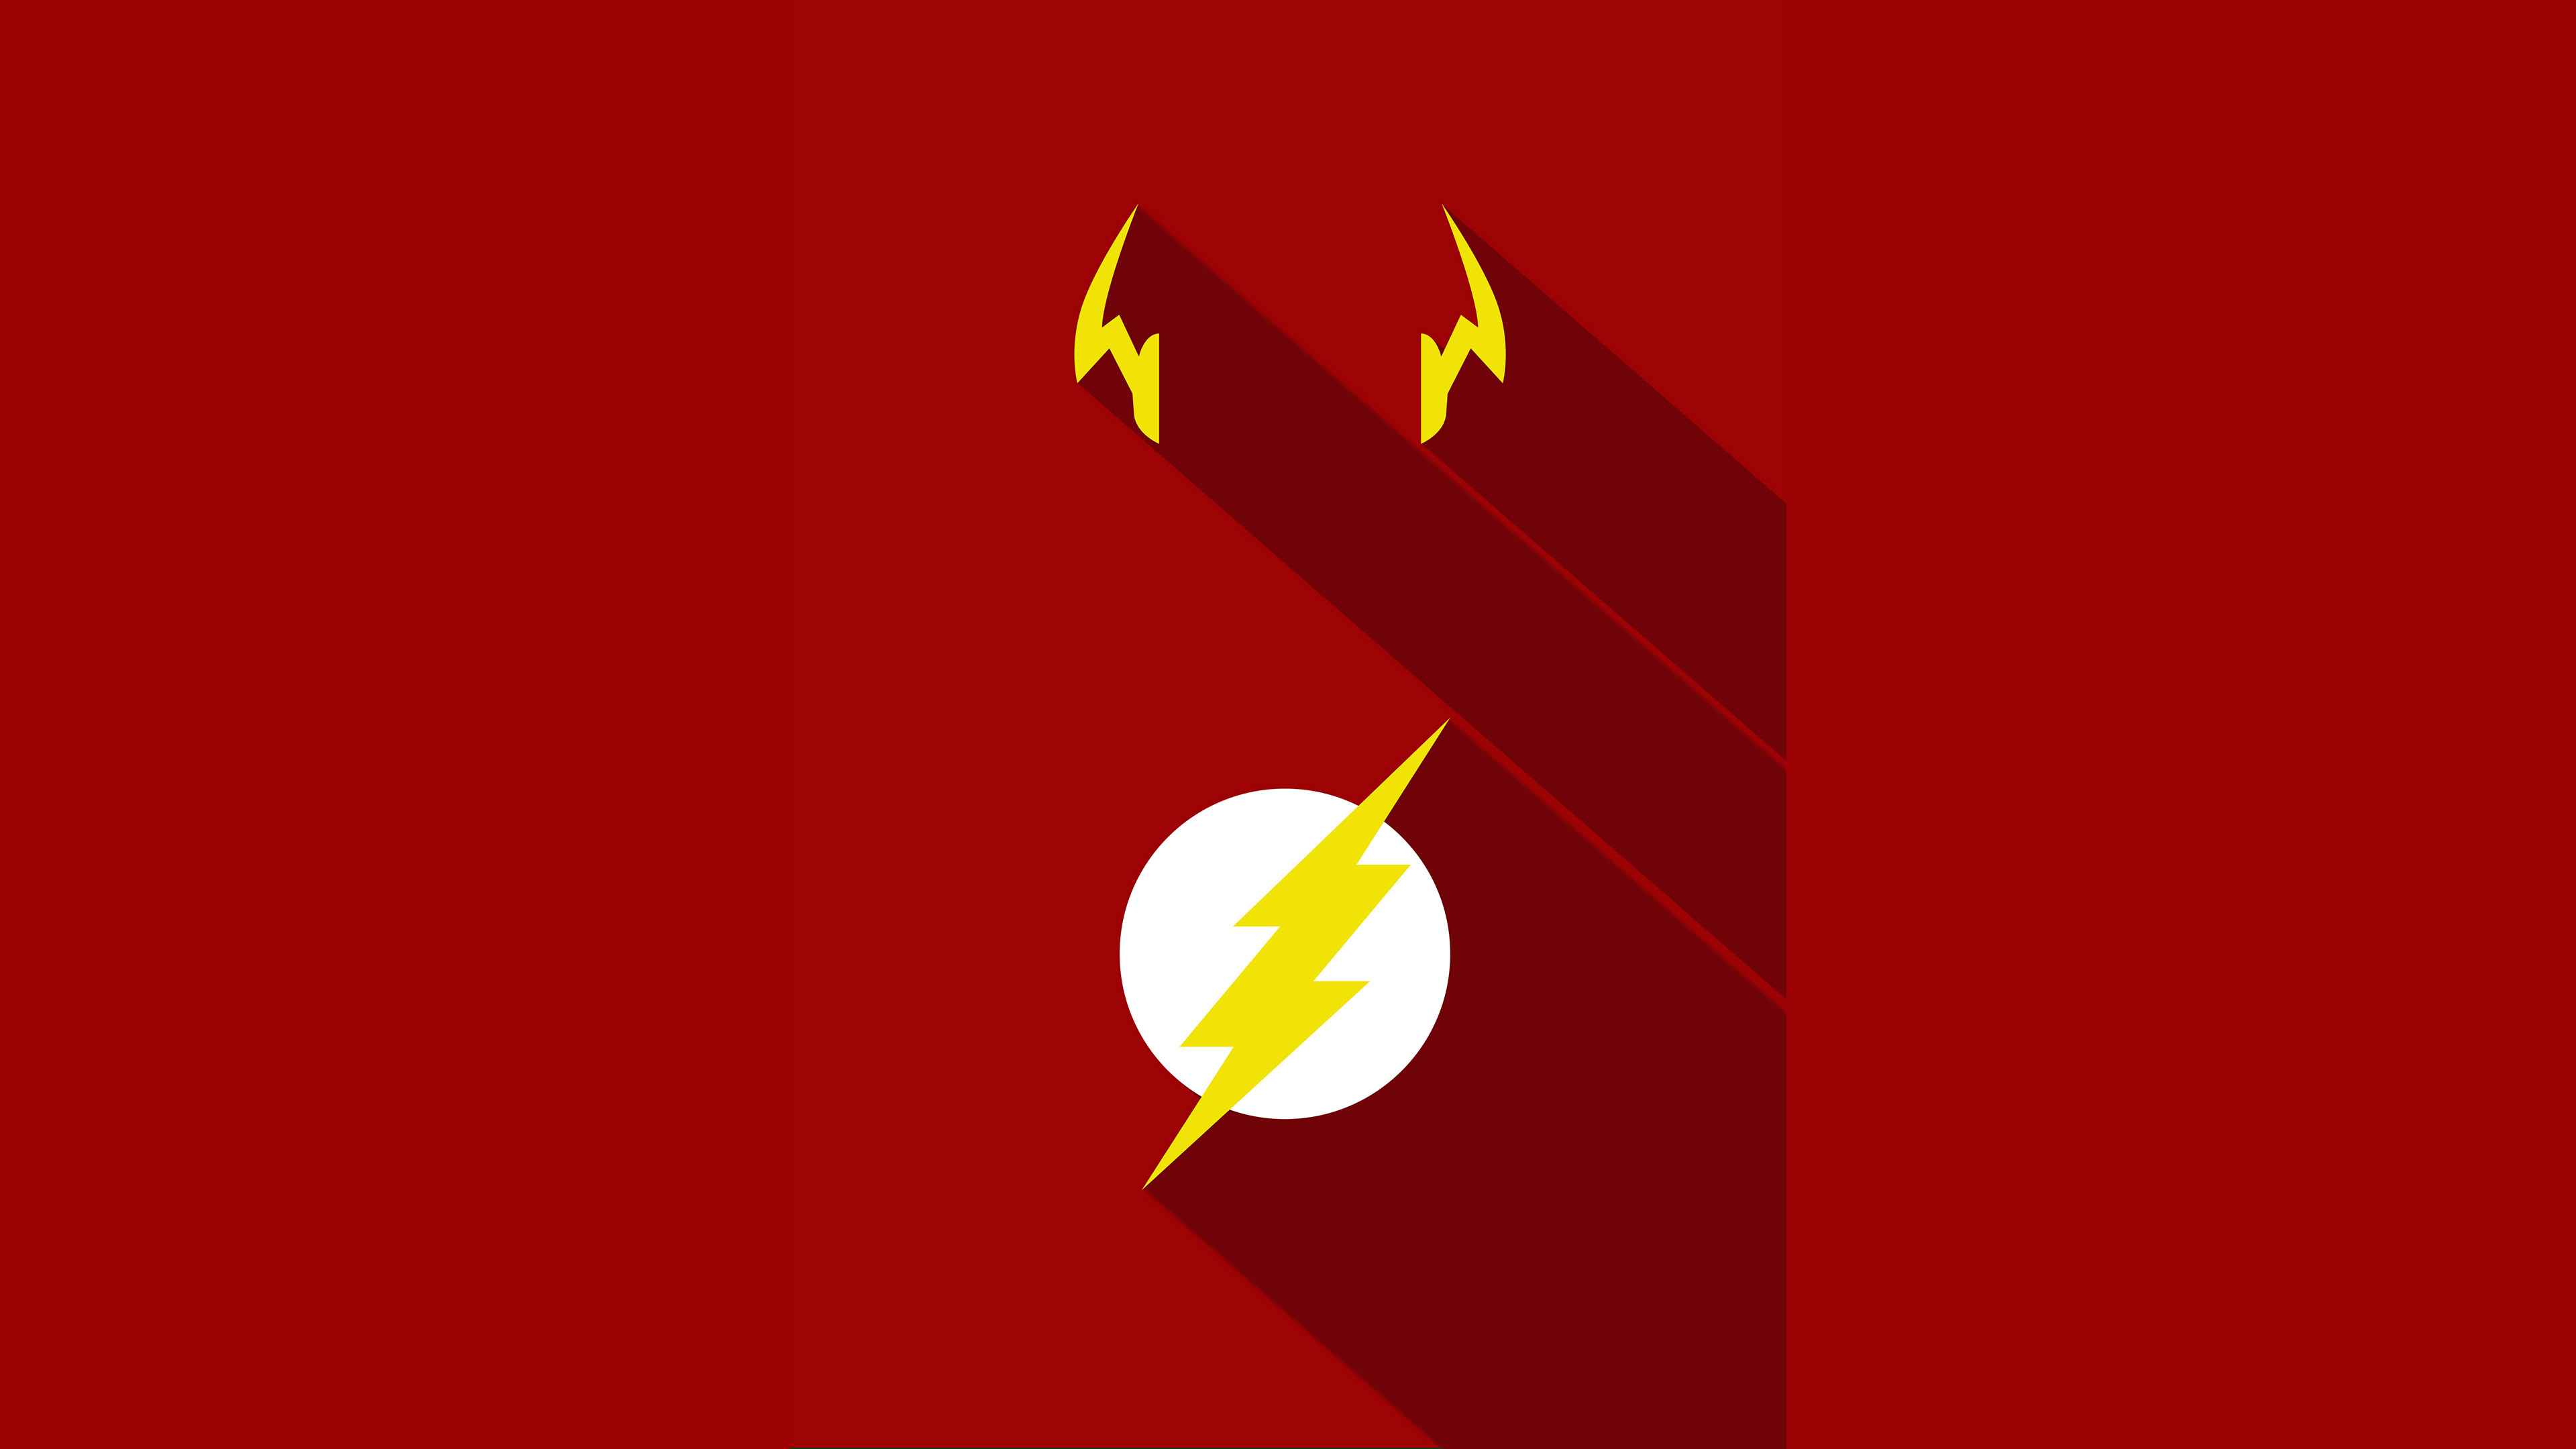 flash minimalism poster hd superheroes 4k wallpapers